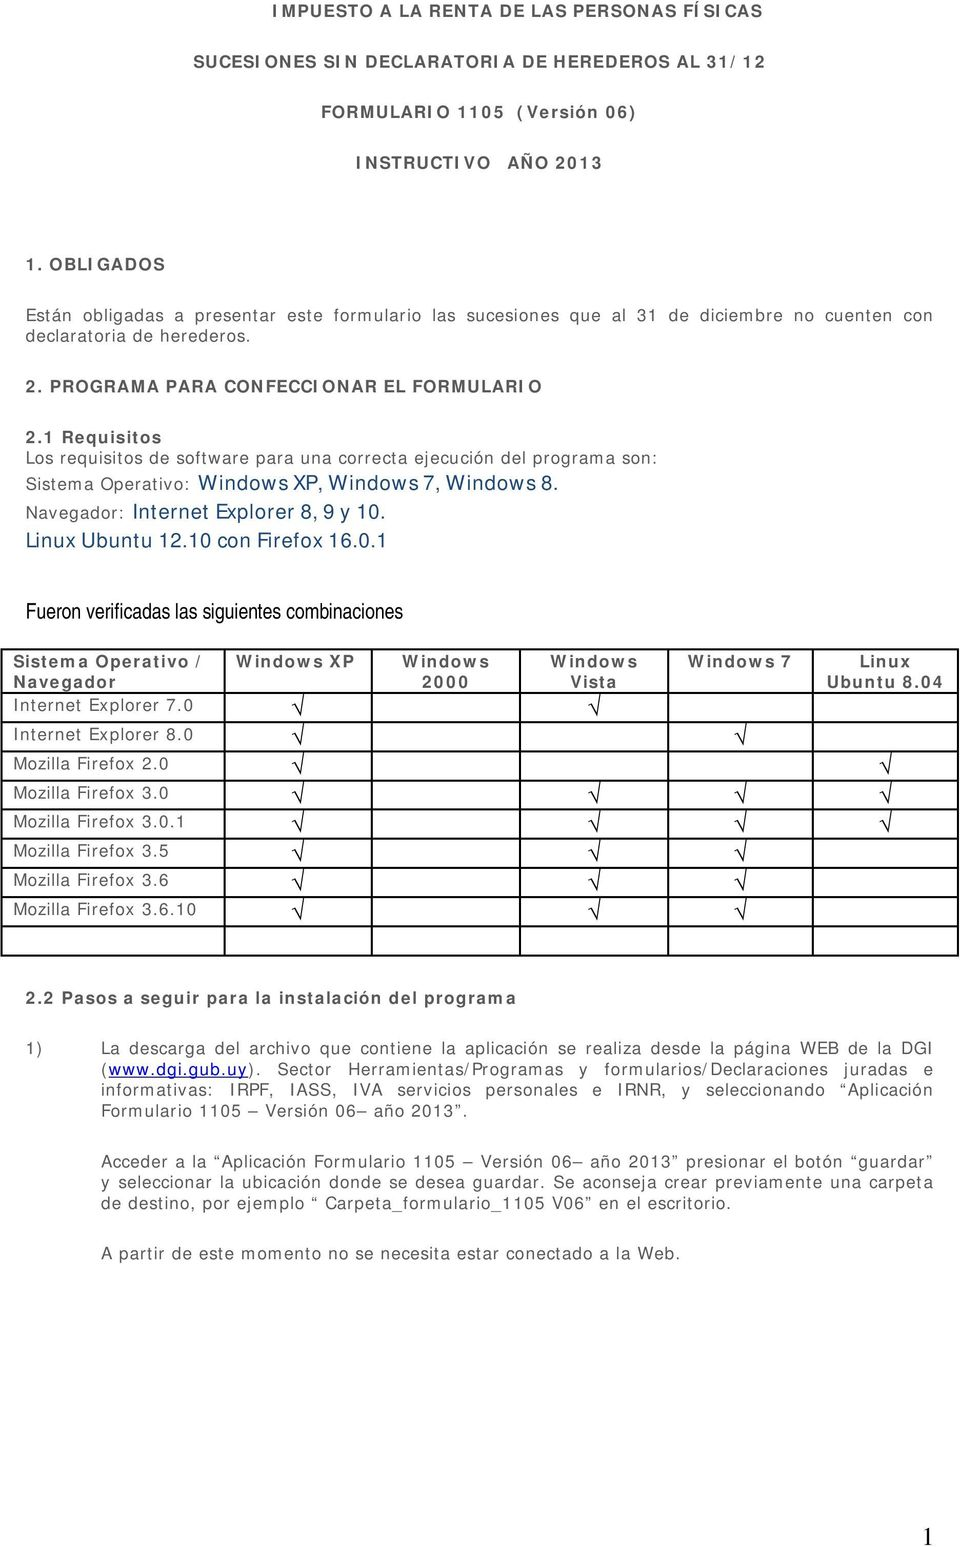 1 Requisitos Los requisitos de software para una correcta ejecución del programa son: Sistema Operativo: Windows XP, Windows 7, Windows 8. Navegador: Internet Explorer 8, 9 y 10. Linux Ubuntu 12.